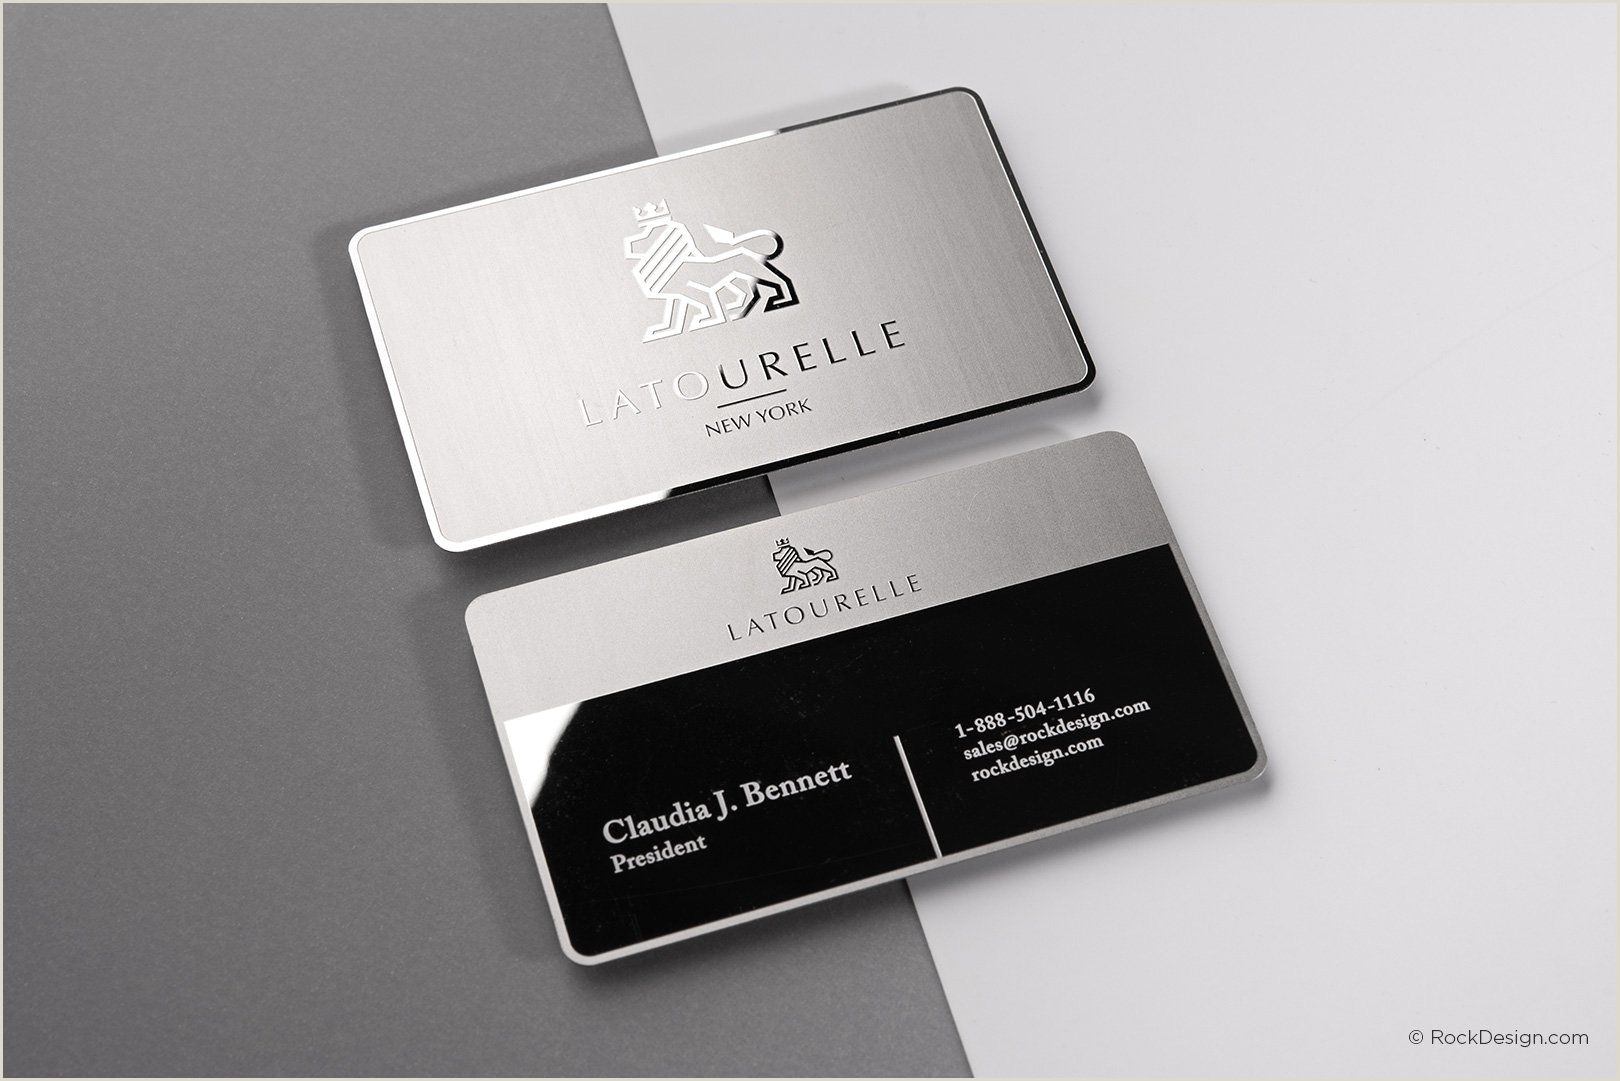 Best Business Cards For Lawyers Free Lawyer Business Card Template Rockdesign